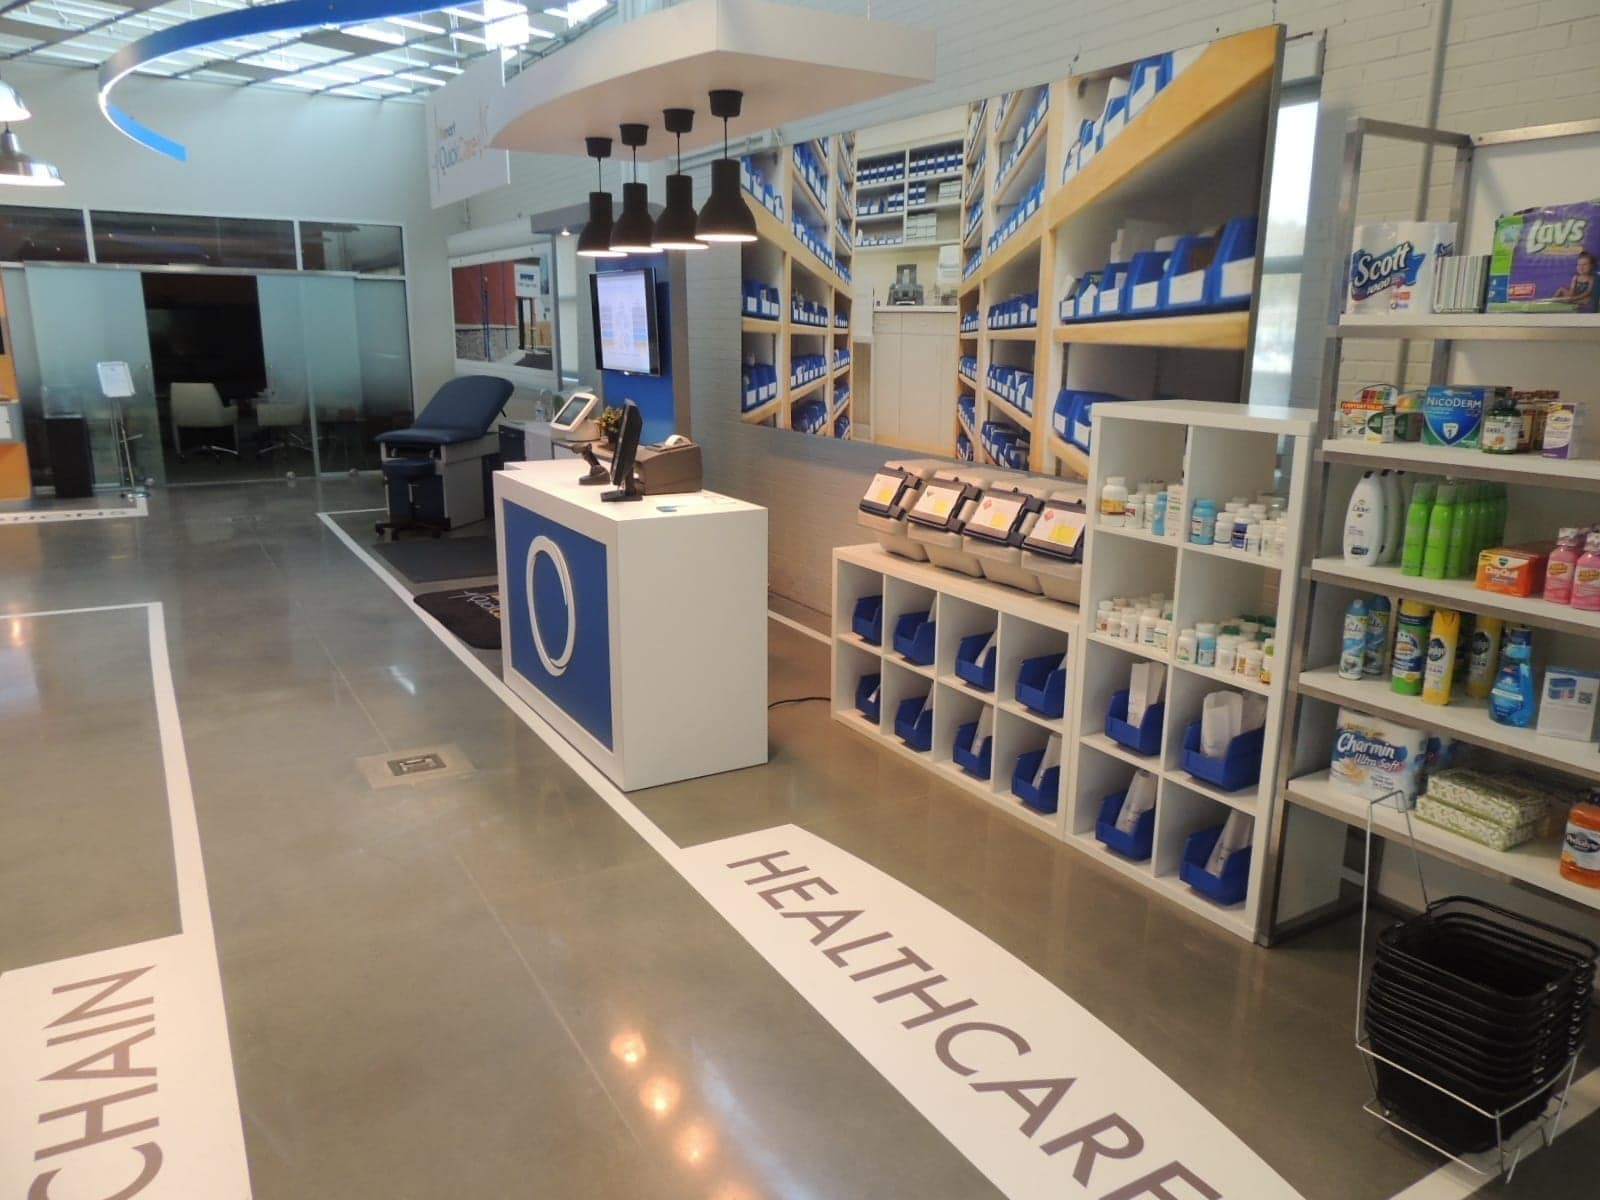 Custom healthcare exhibit with customer engagement kiosk, product shelving and displays, and large vinyl graphic backdrop